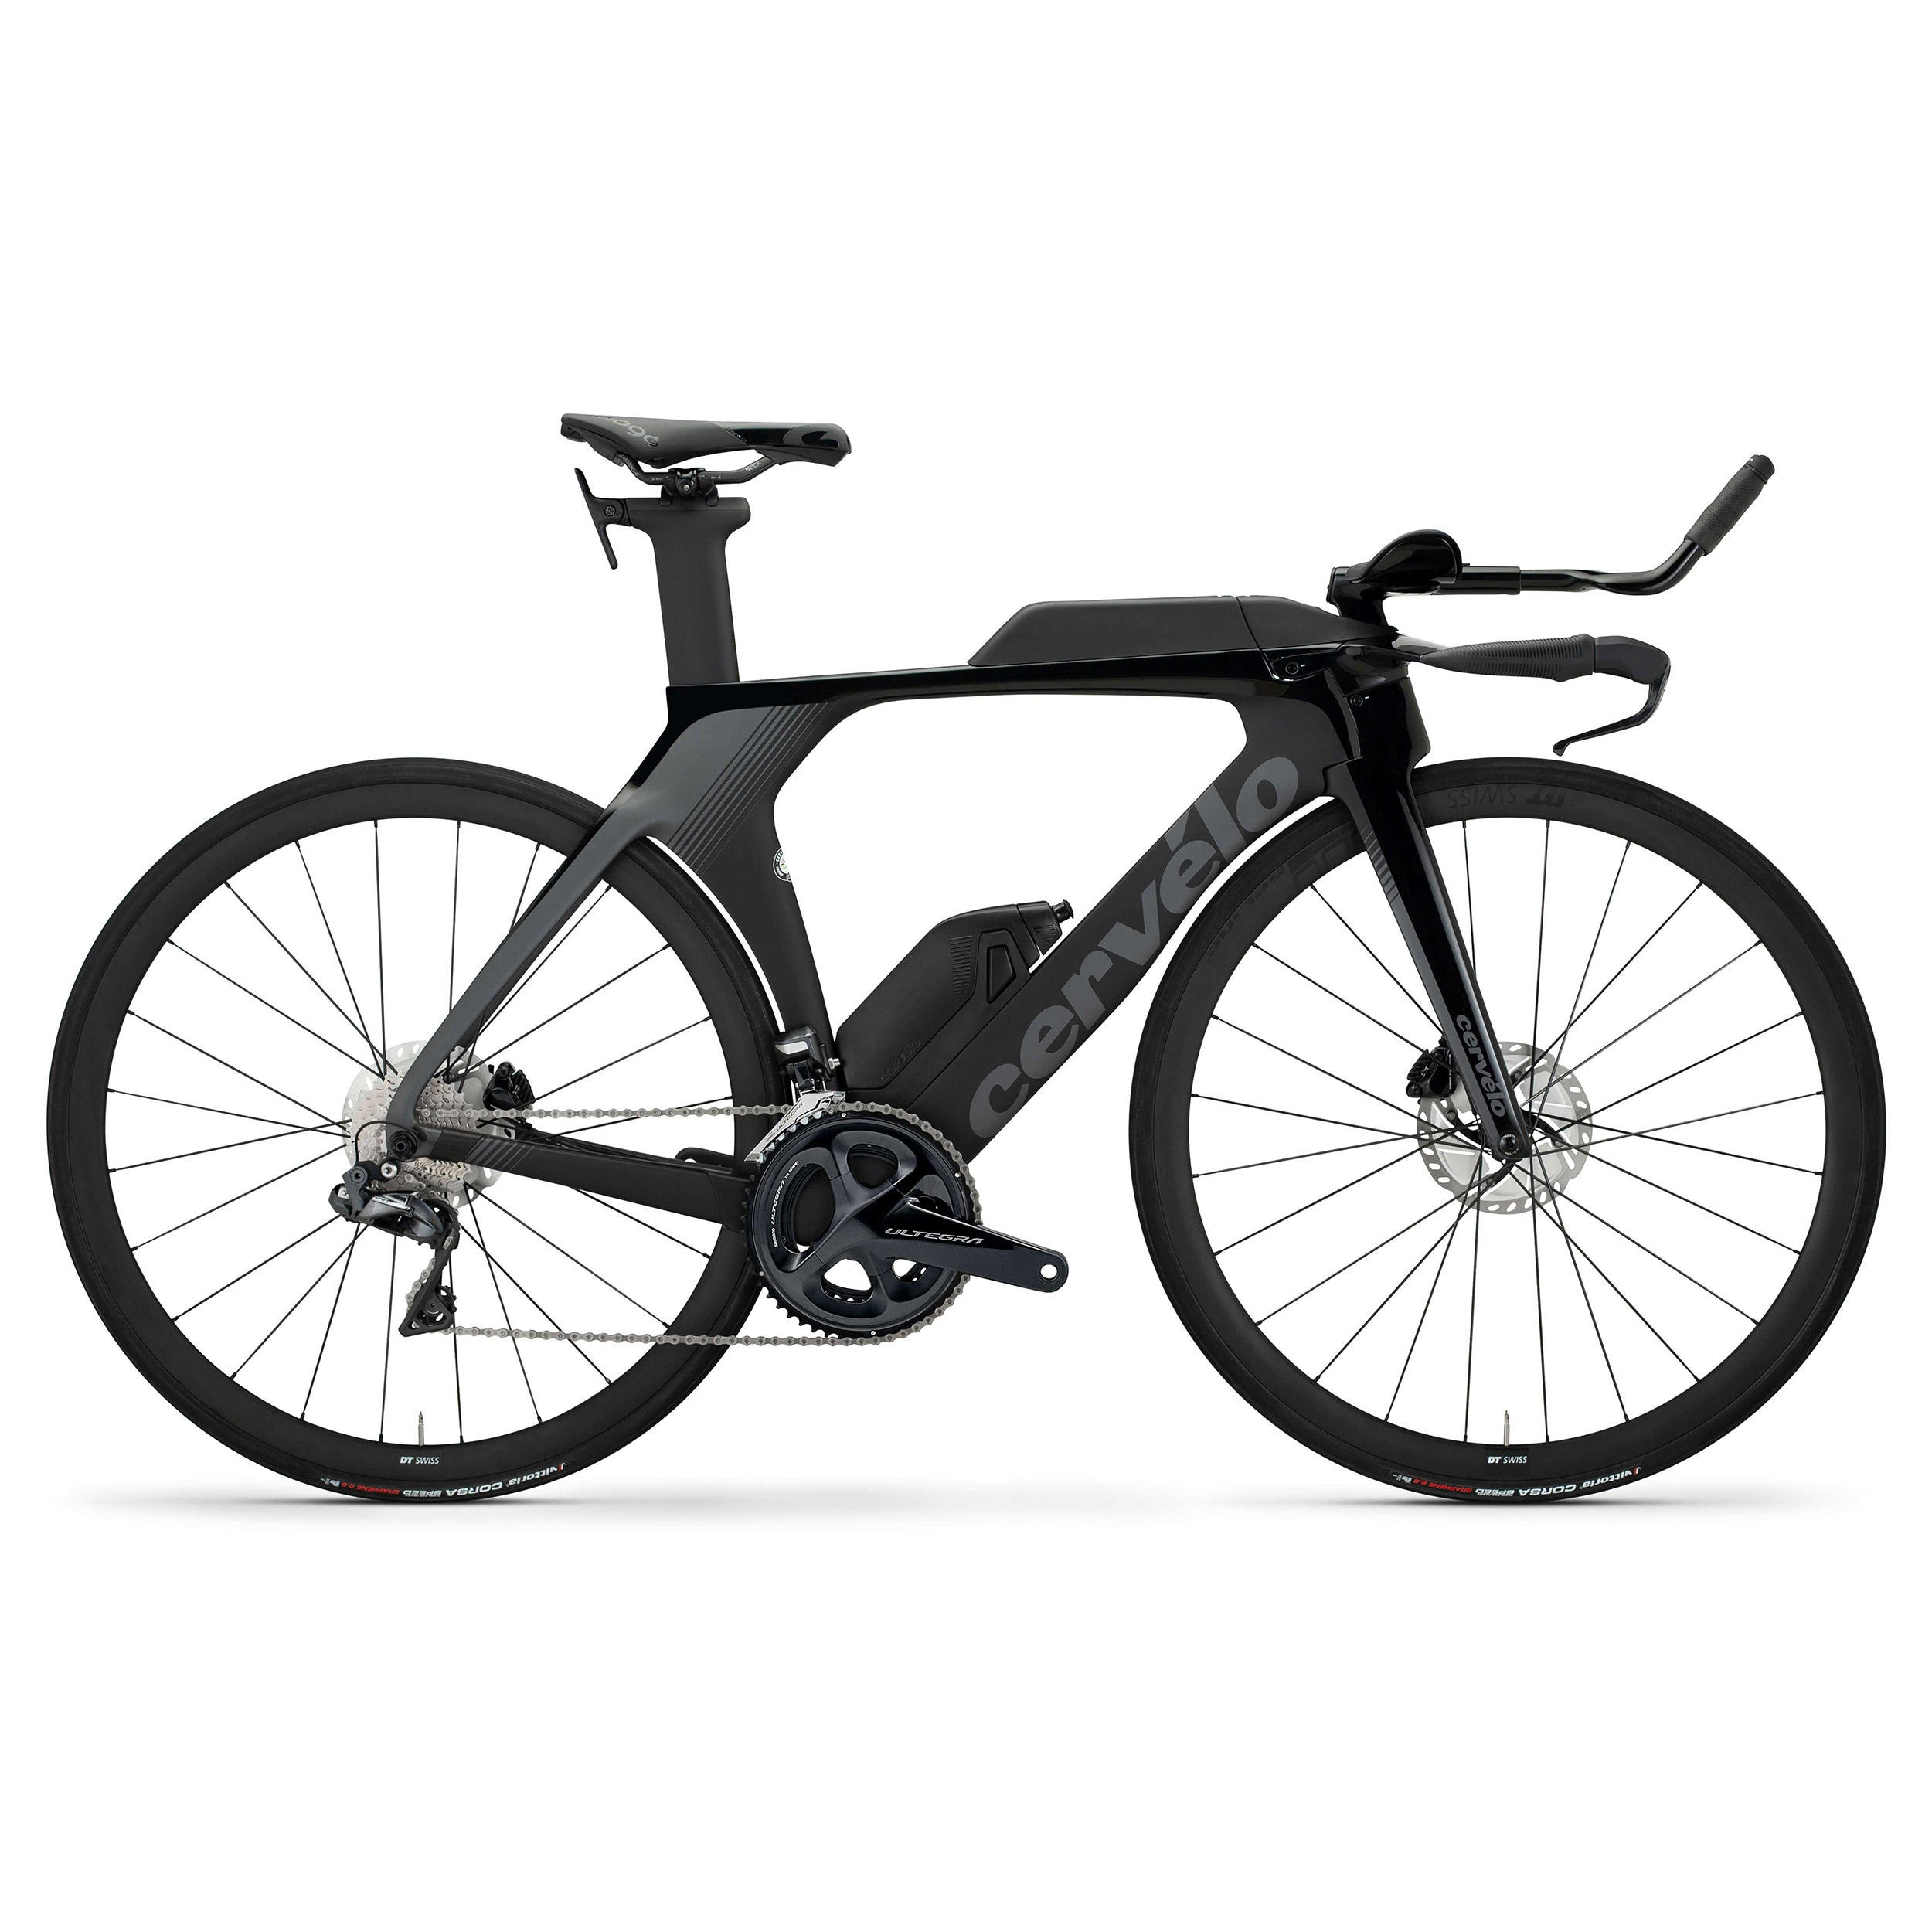 Cervelo P5 Disc Ultegra Di2 Triathlon Bike